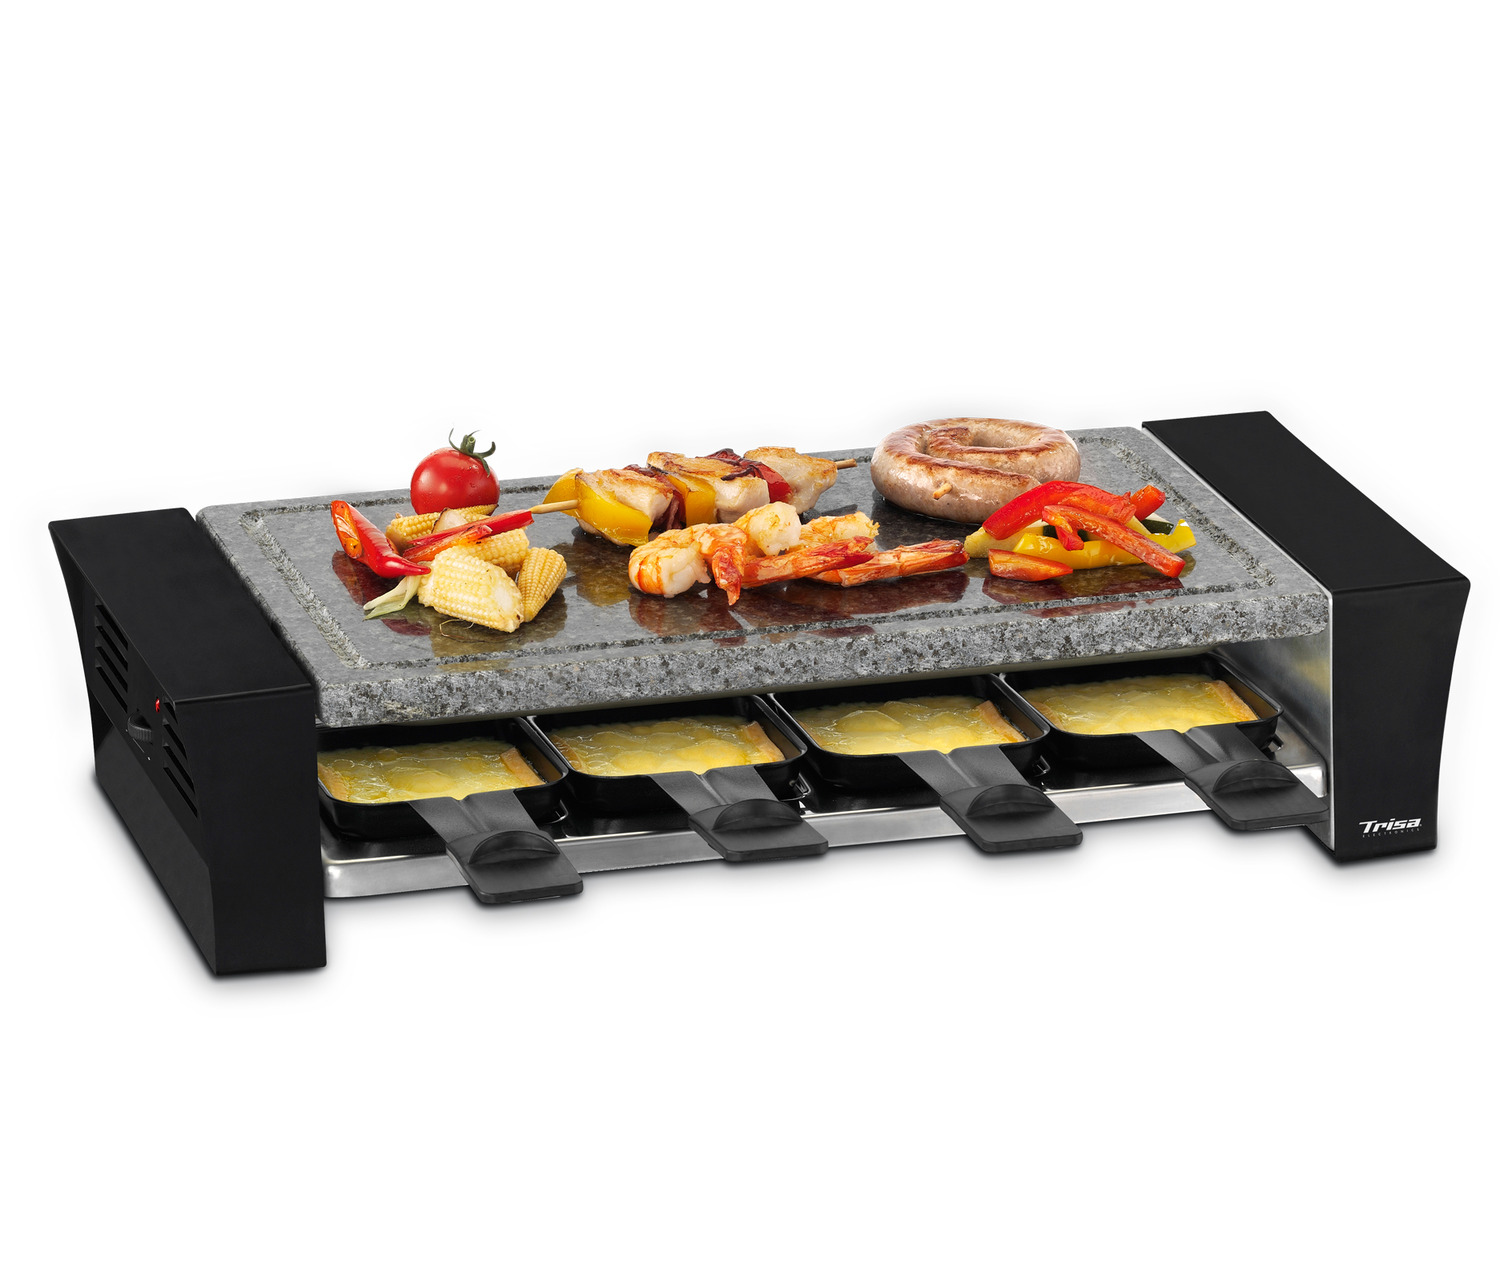 trisa raclettino 8 raclette grill. Black Bedroom Furniture Sets. Home Design Ideas